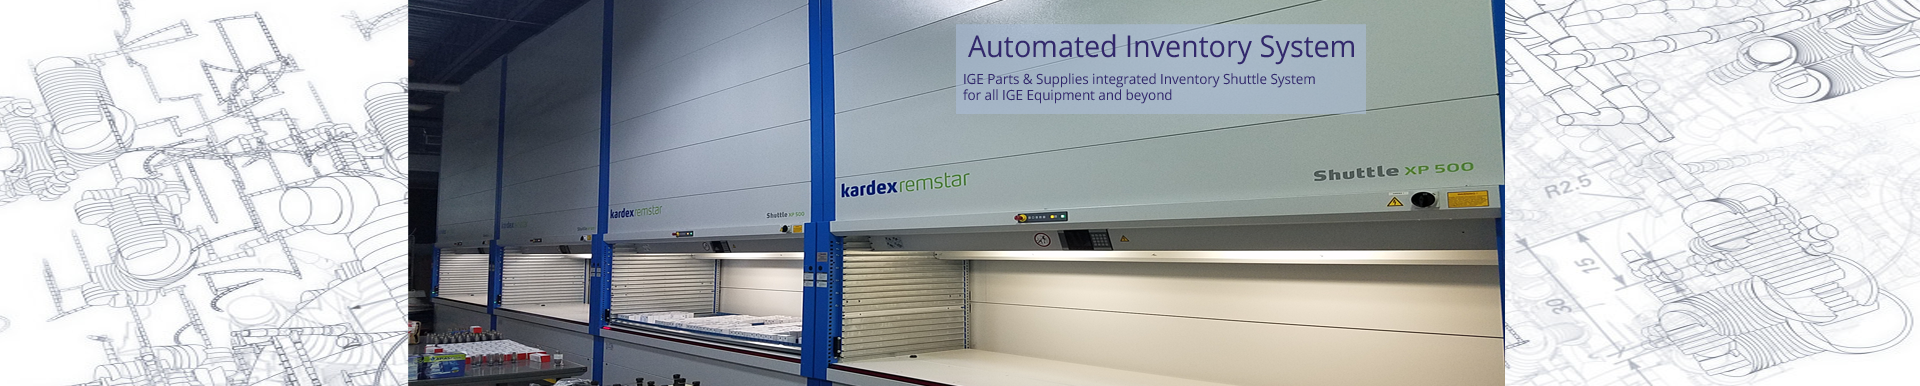 IGE Parts & Supplies Warehouse